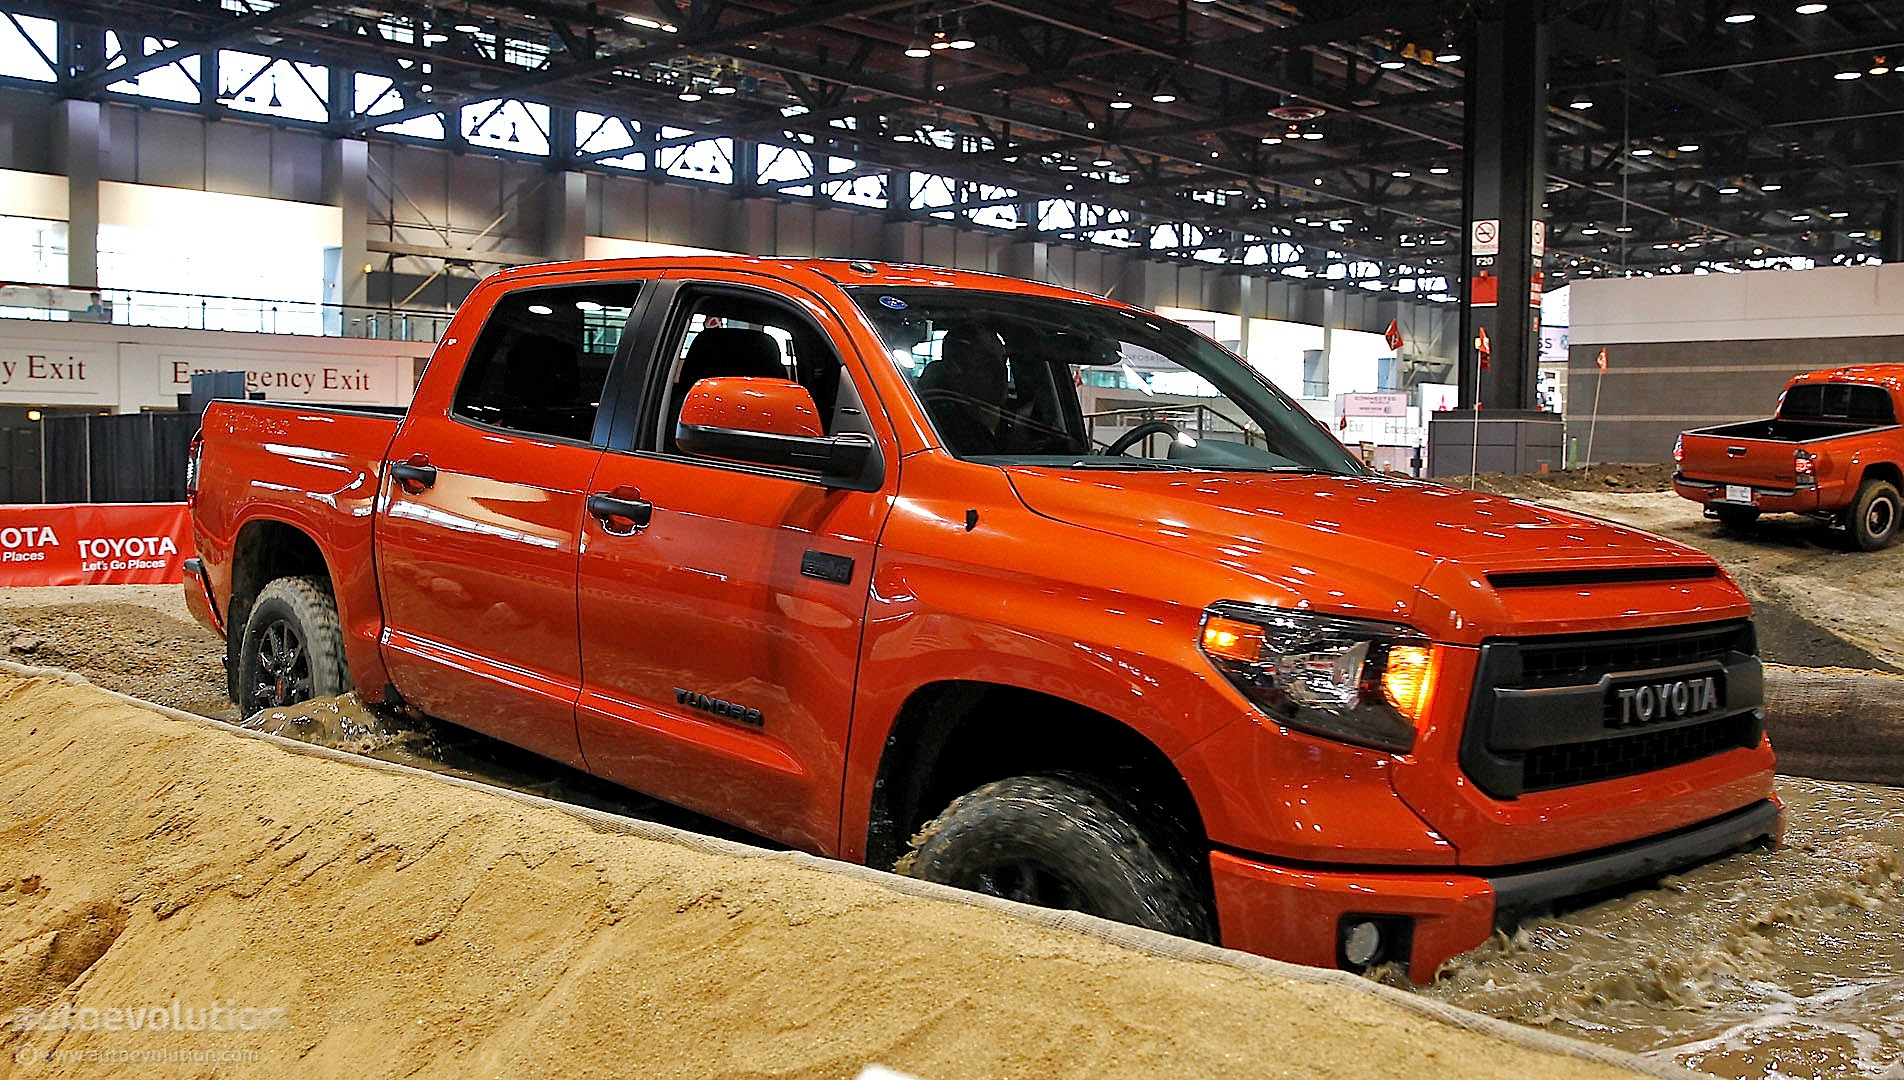 Toyota Tundra Trd Pro Details From 2014 Chicago Live